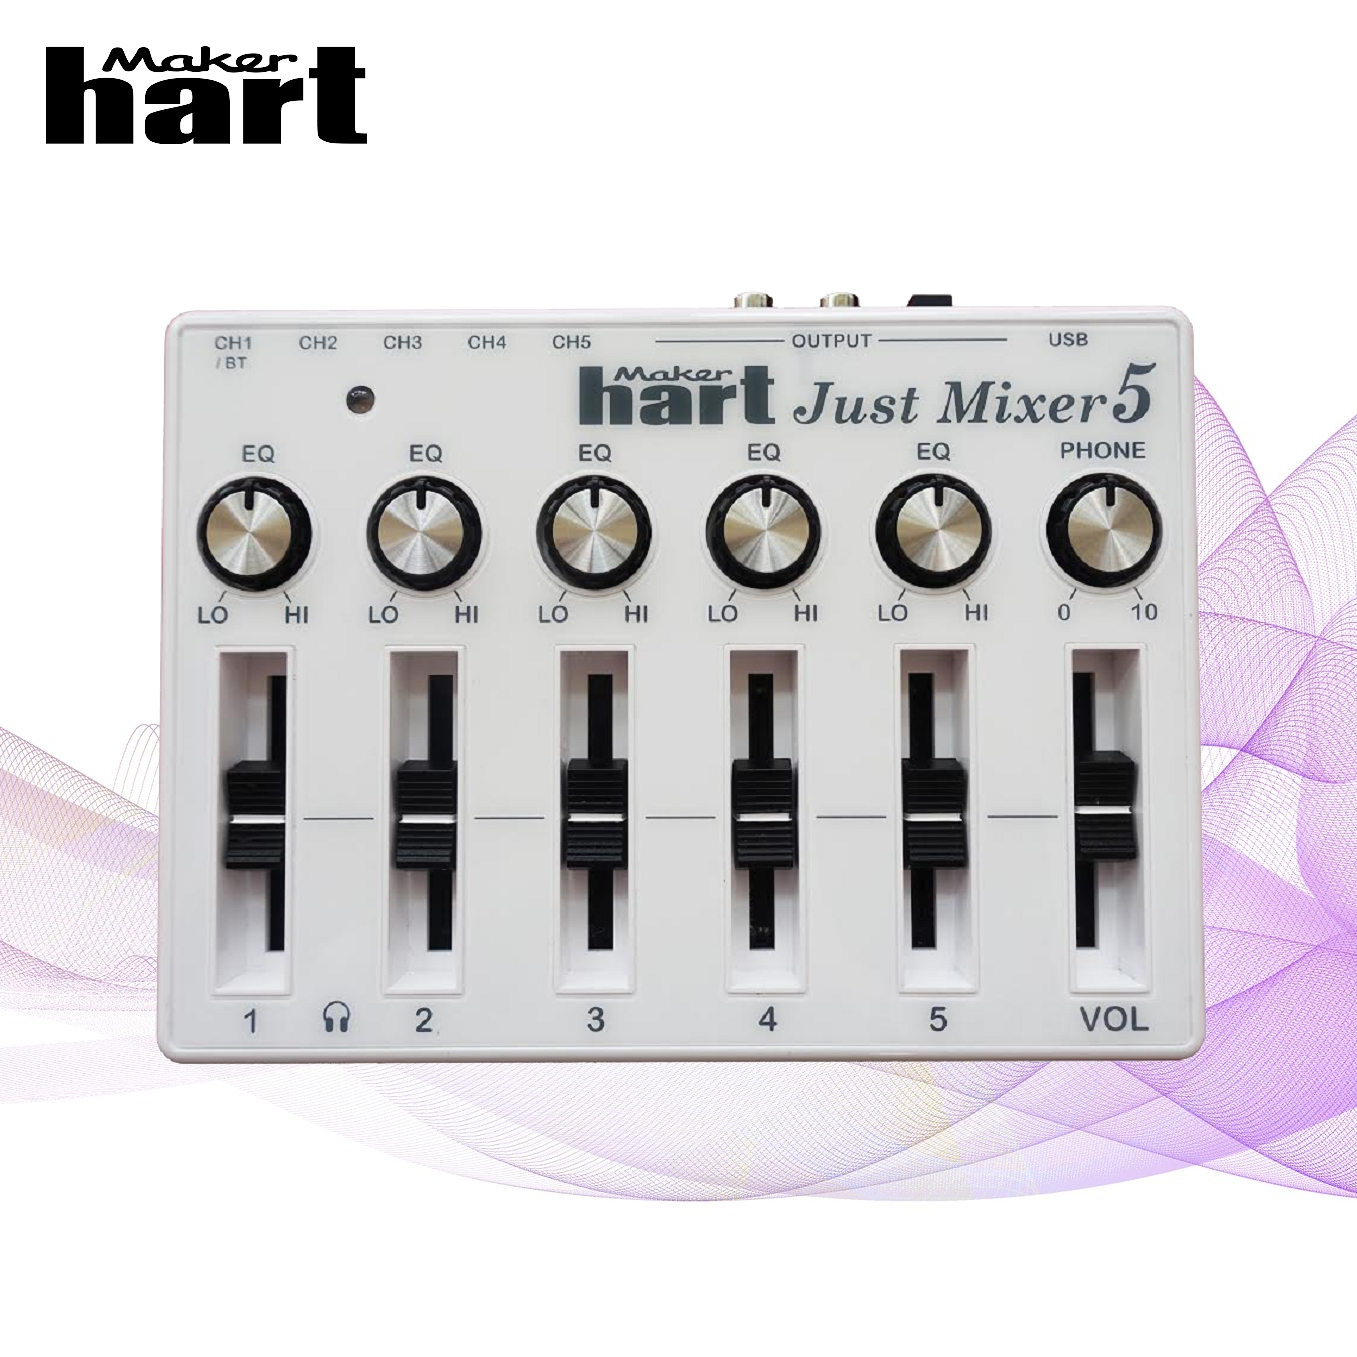 Taiwan Maker hart DD-PAD DIY Electronic Drum MIDI Controller Rhythm machine Arduino Program